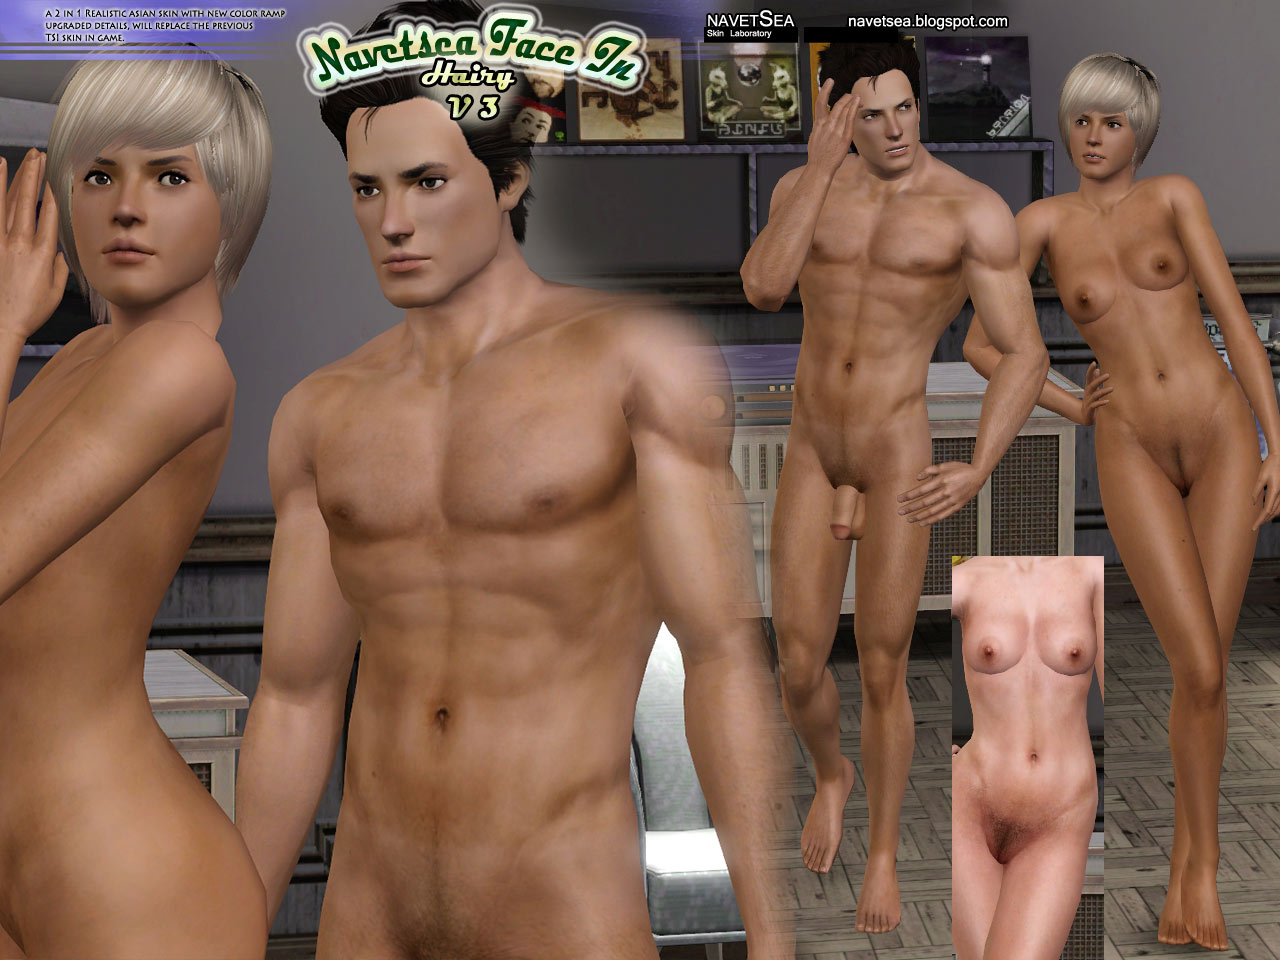 The sims 2 nude sex patch uncensor  sexy film